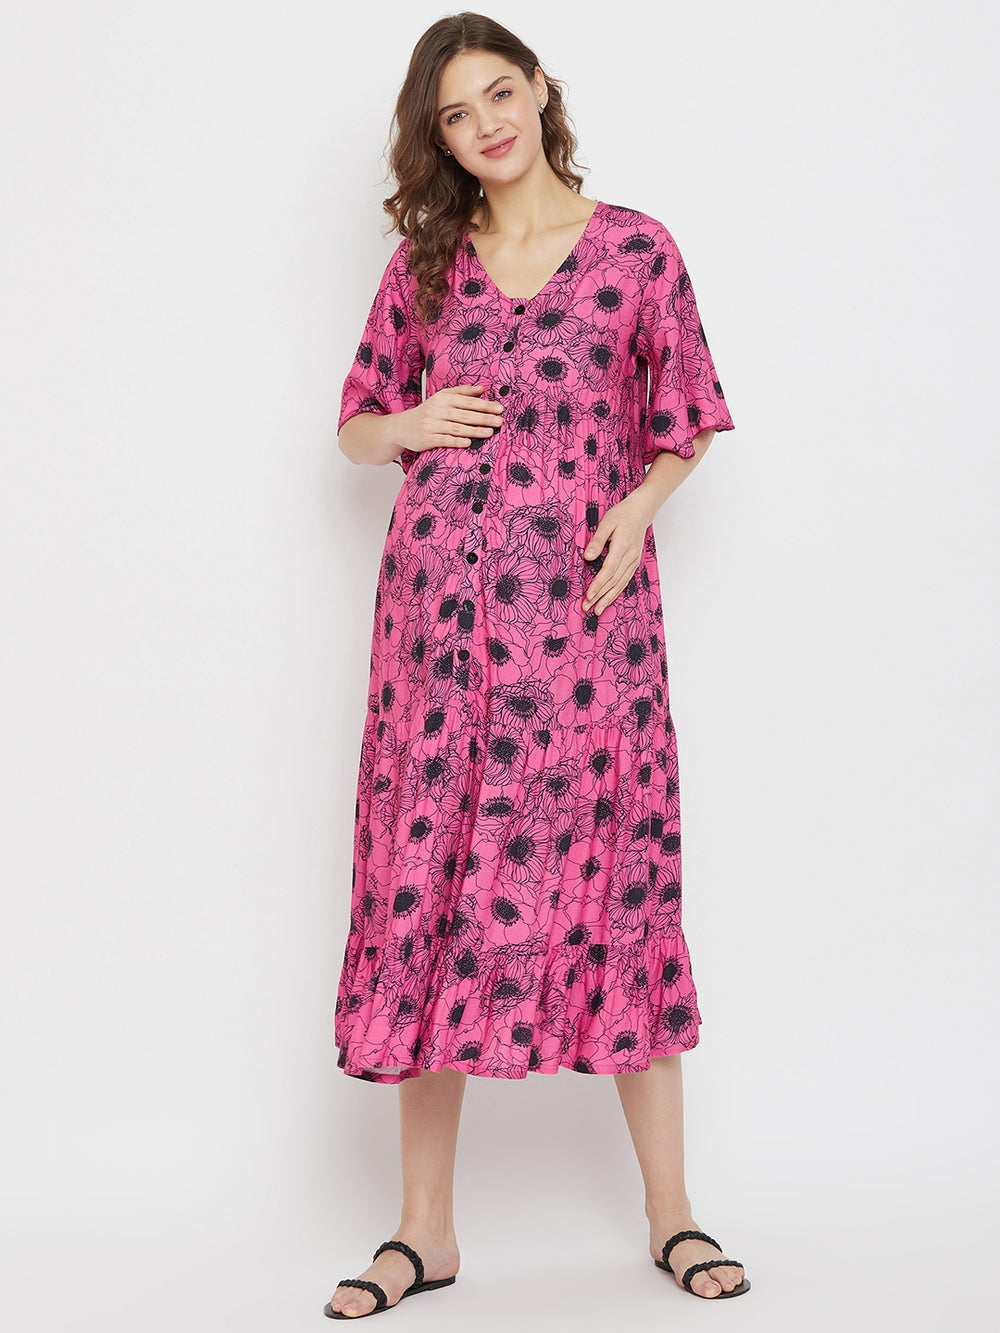 Midi Length Tiered Maternity and Feeding Dress